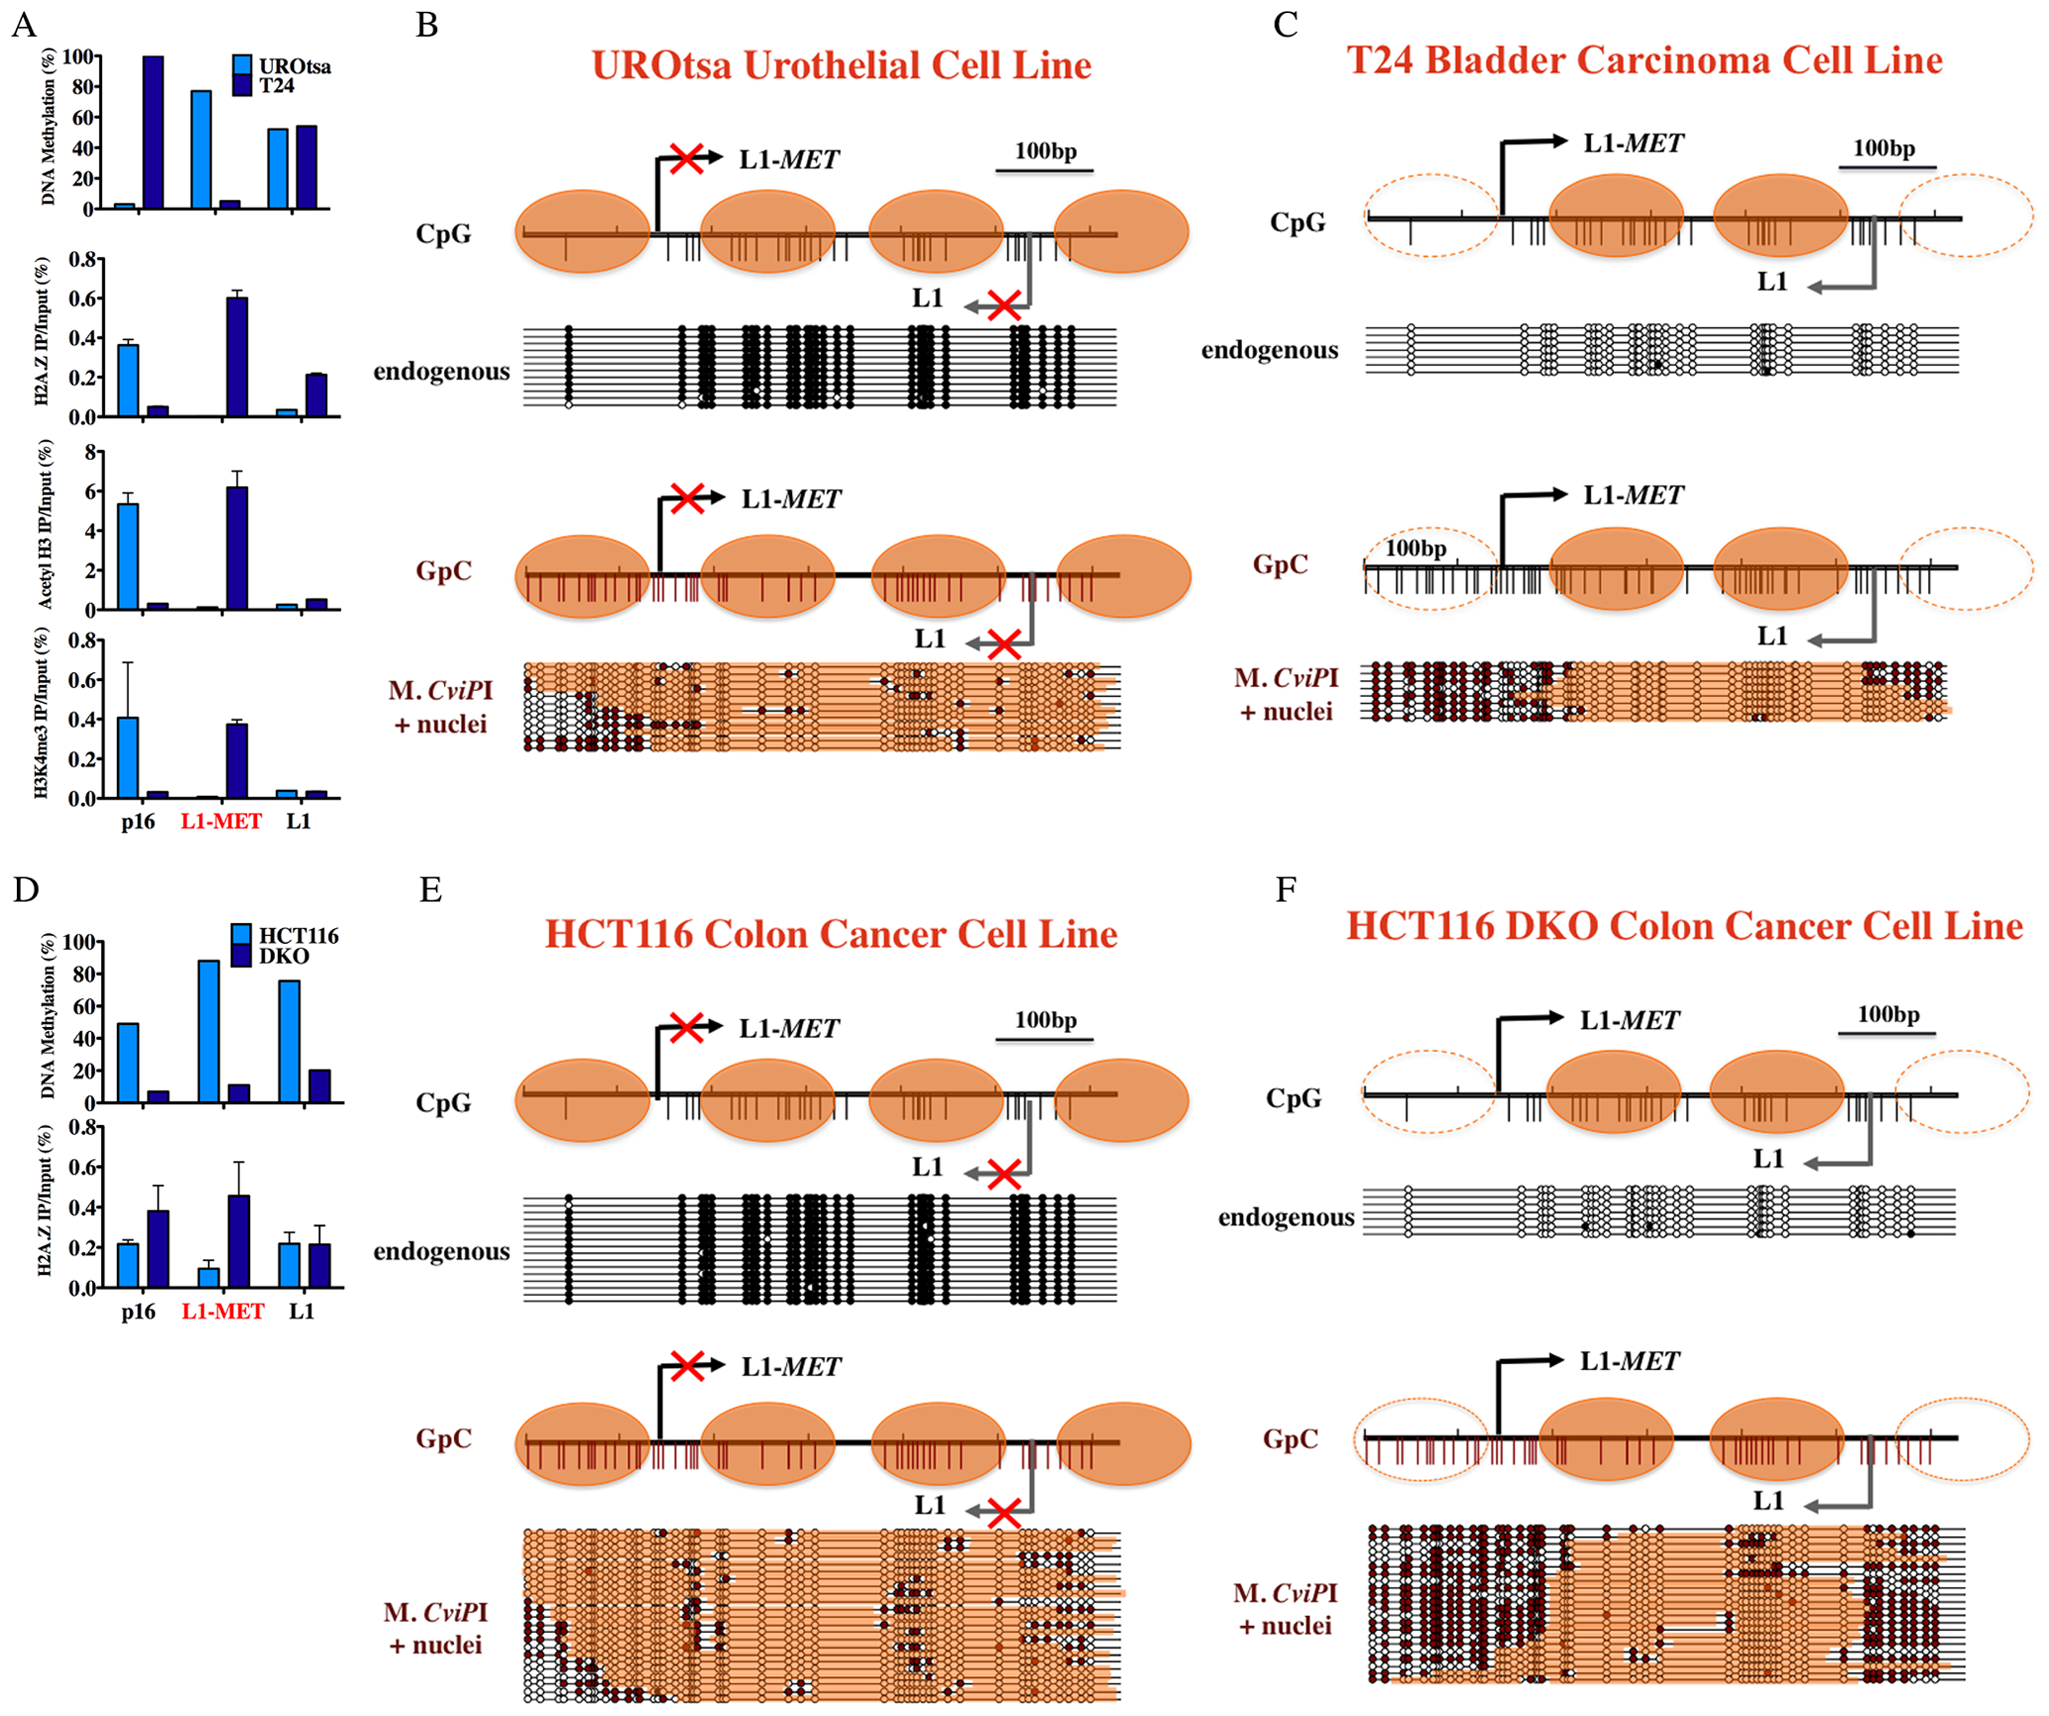 Chromatin remodeling occurs at an active L1-<i>MET</i> promoter.